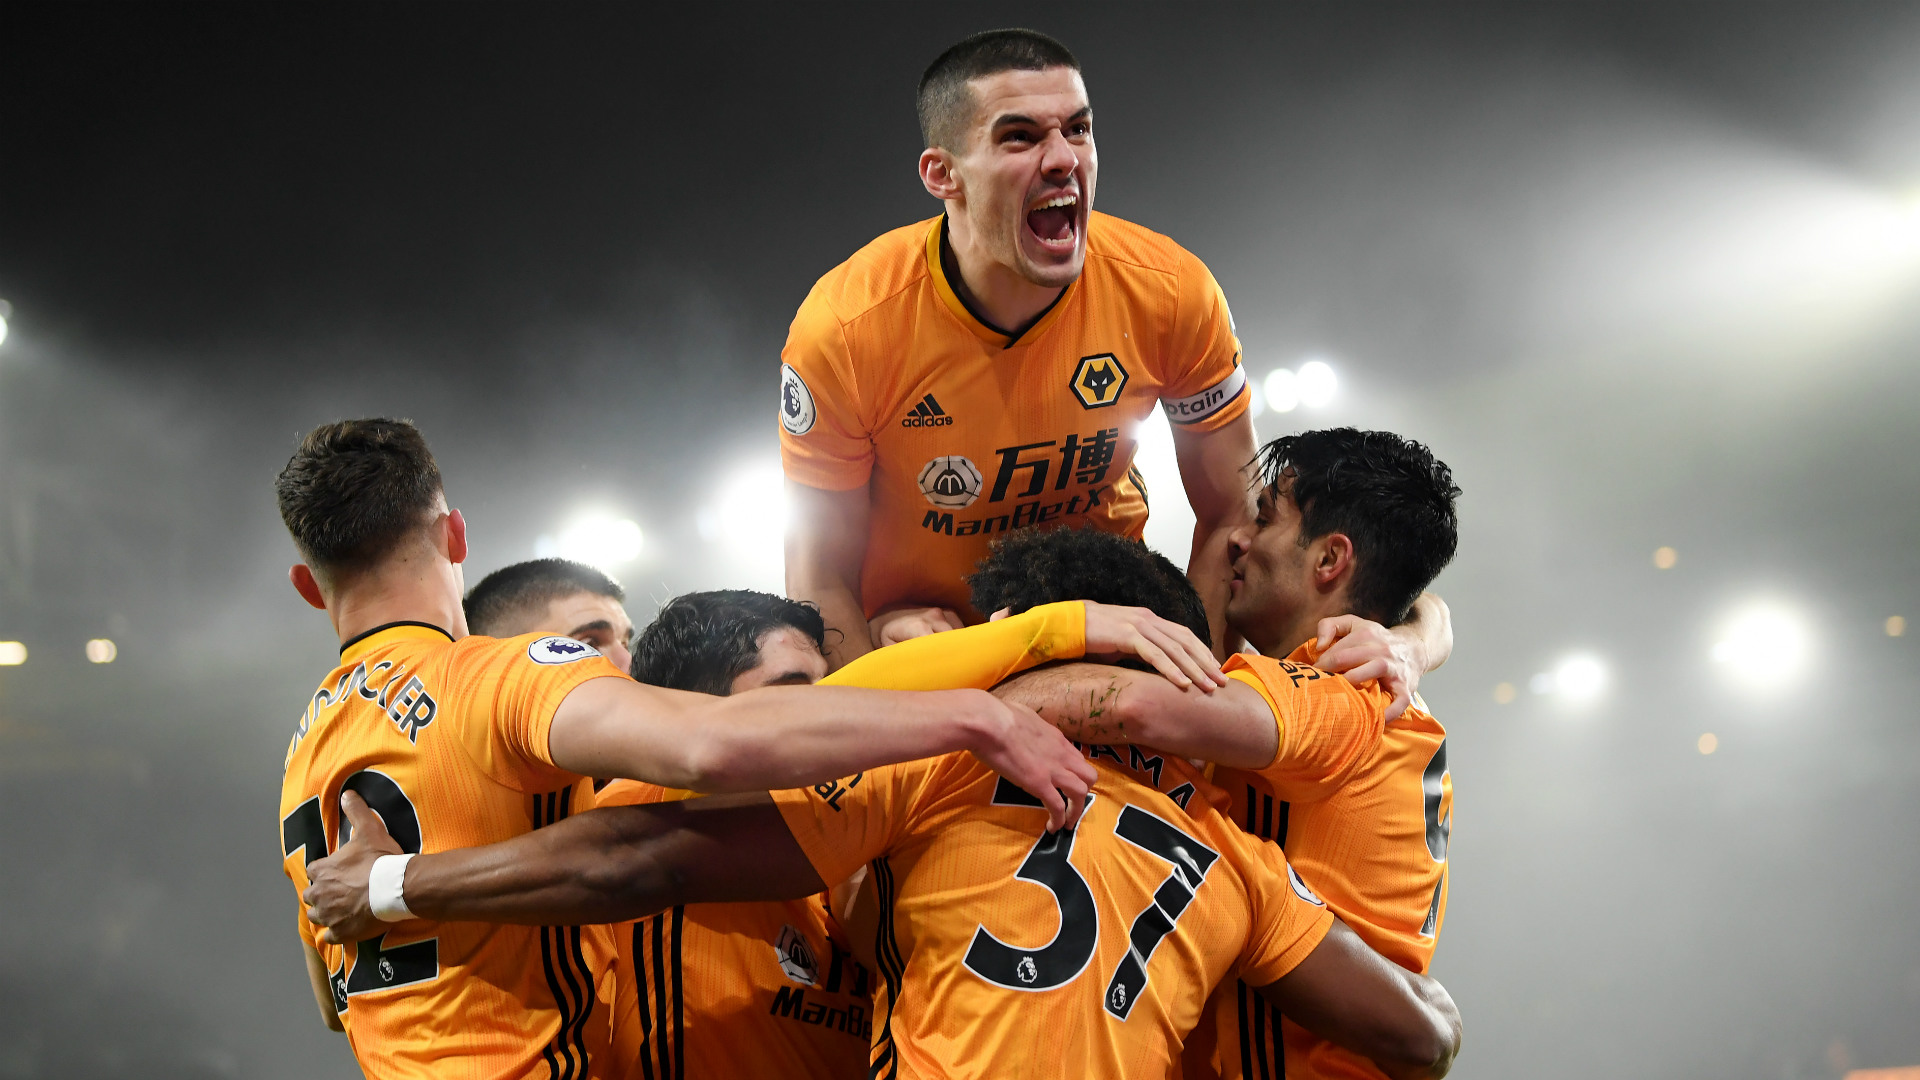 Man United reportedly interested in Wolves' Diogo Jota